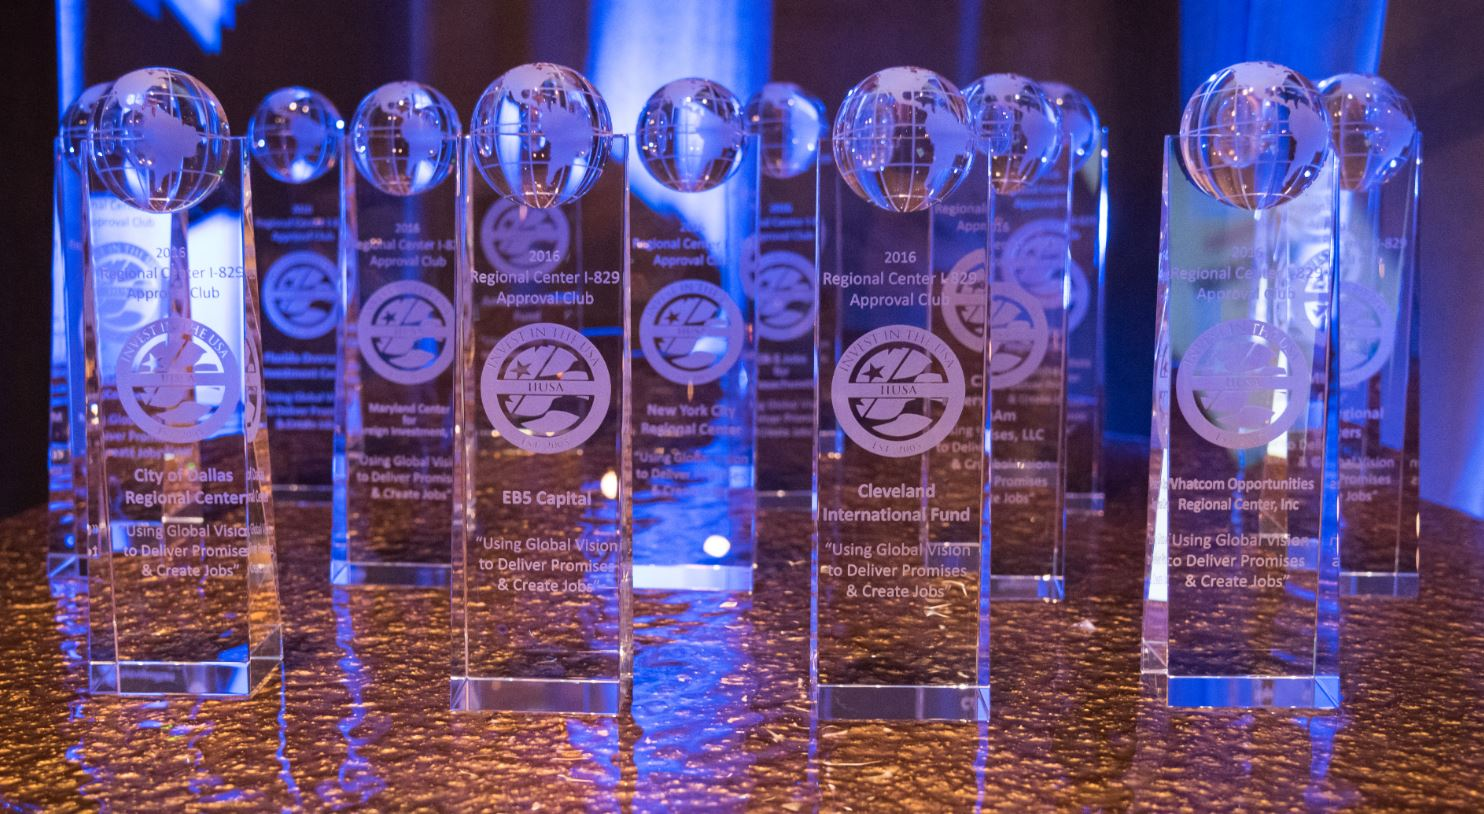 IIUSA to Honor Regional Center Industry Success with I-829 and Return of Capital Awards